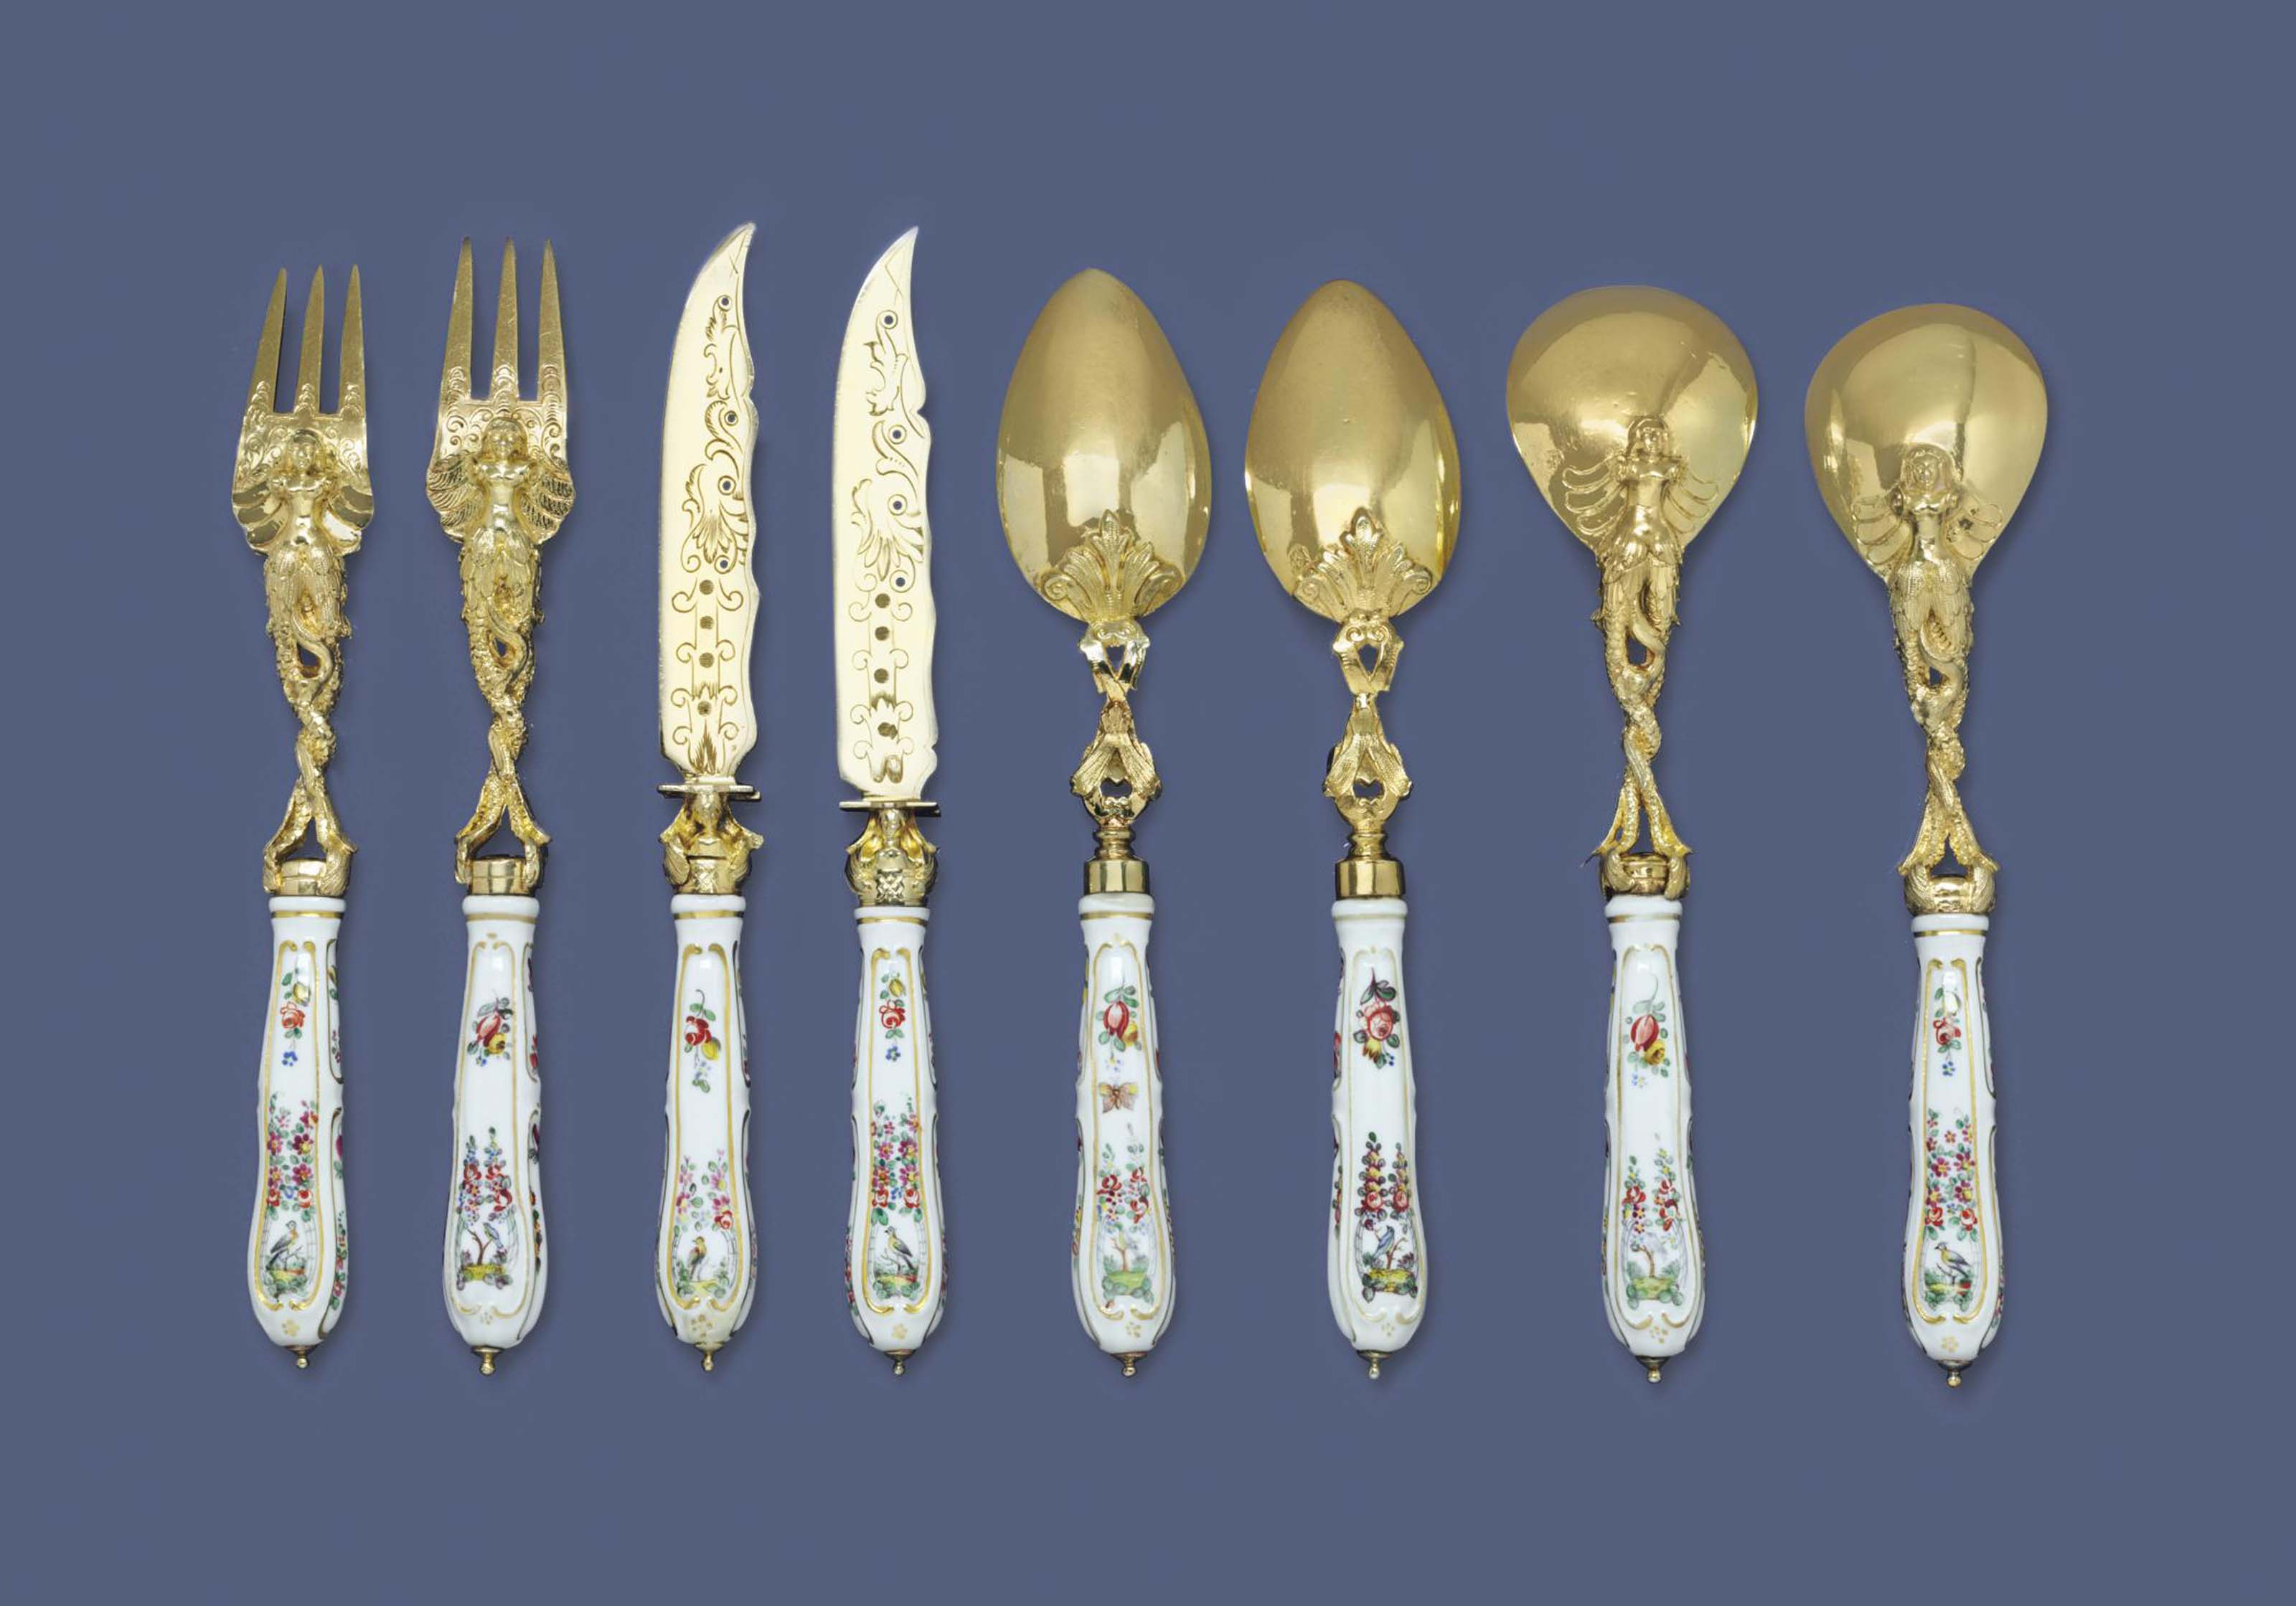 A CONTINENTAL SILVER-GILT AND PORCELAIN DESSERT SERVICE